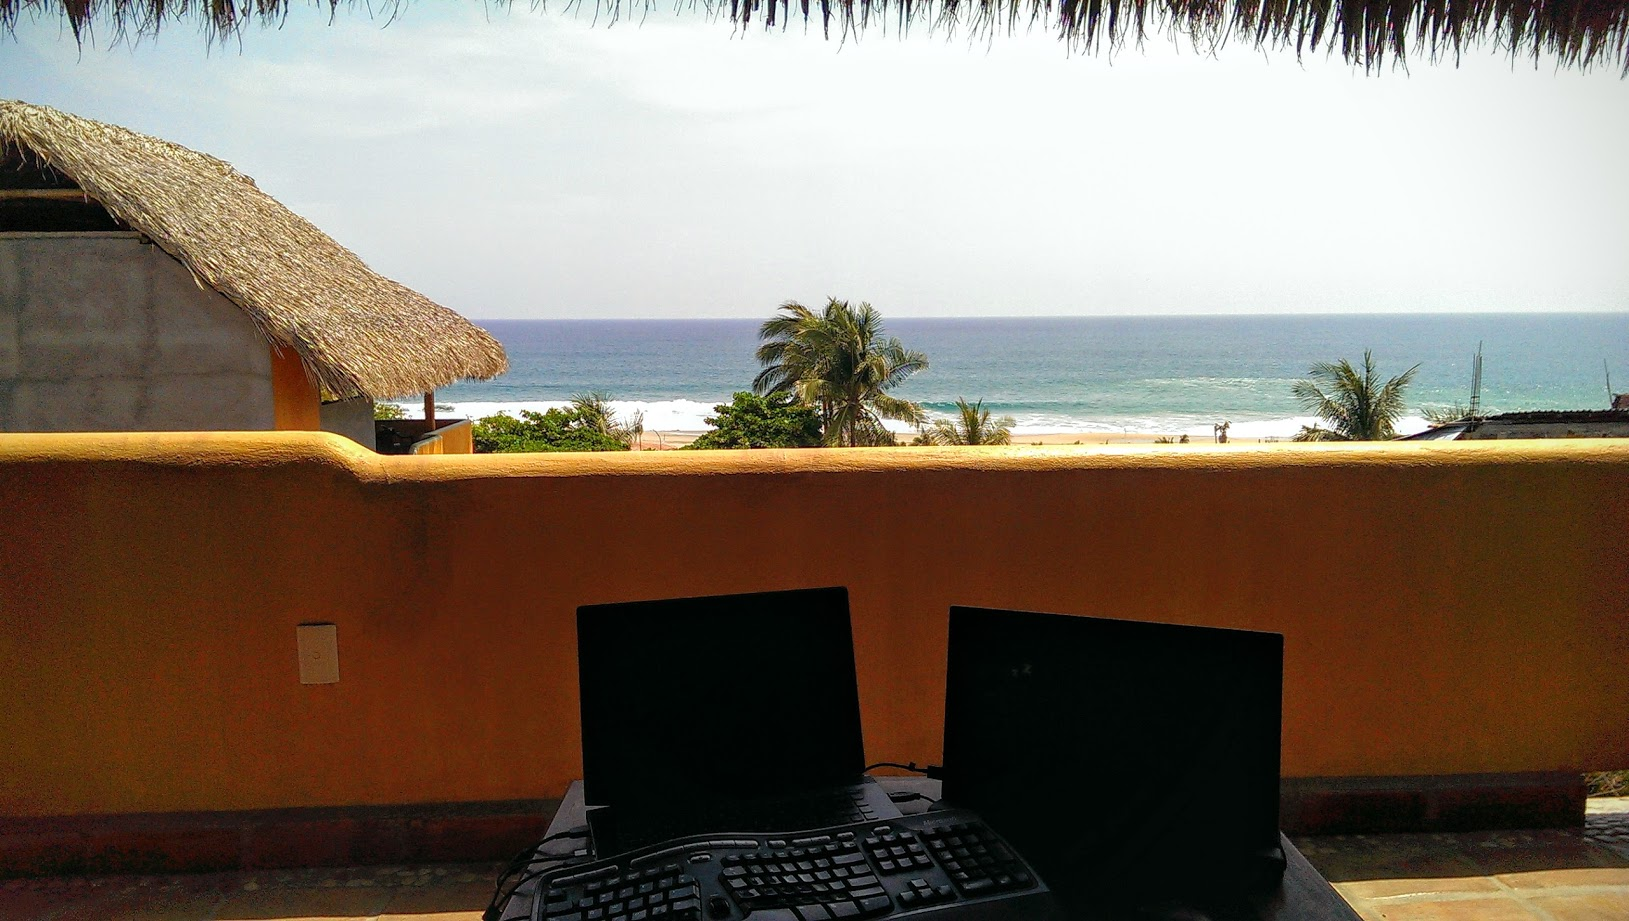 The view from my surf-spot office in Puerto Escondido